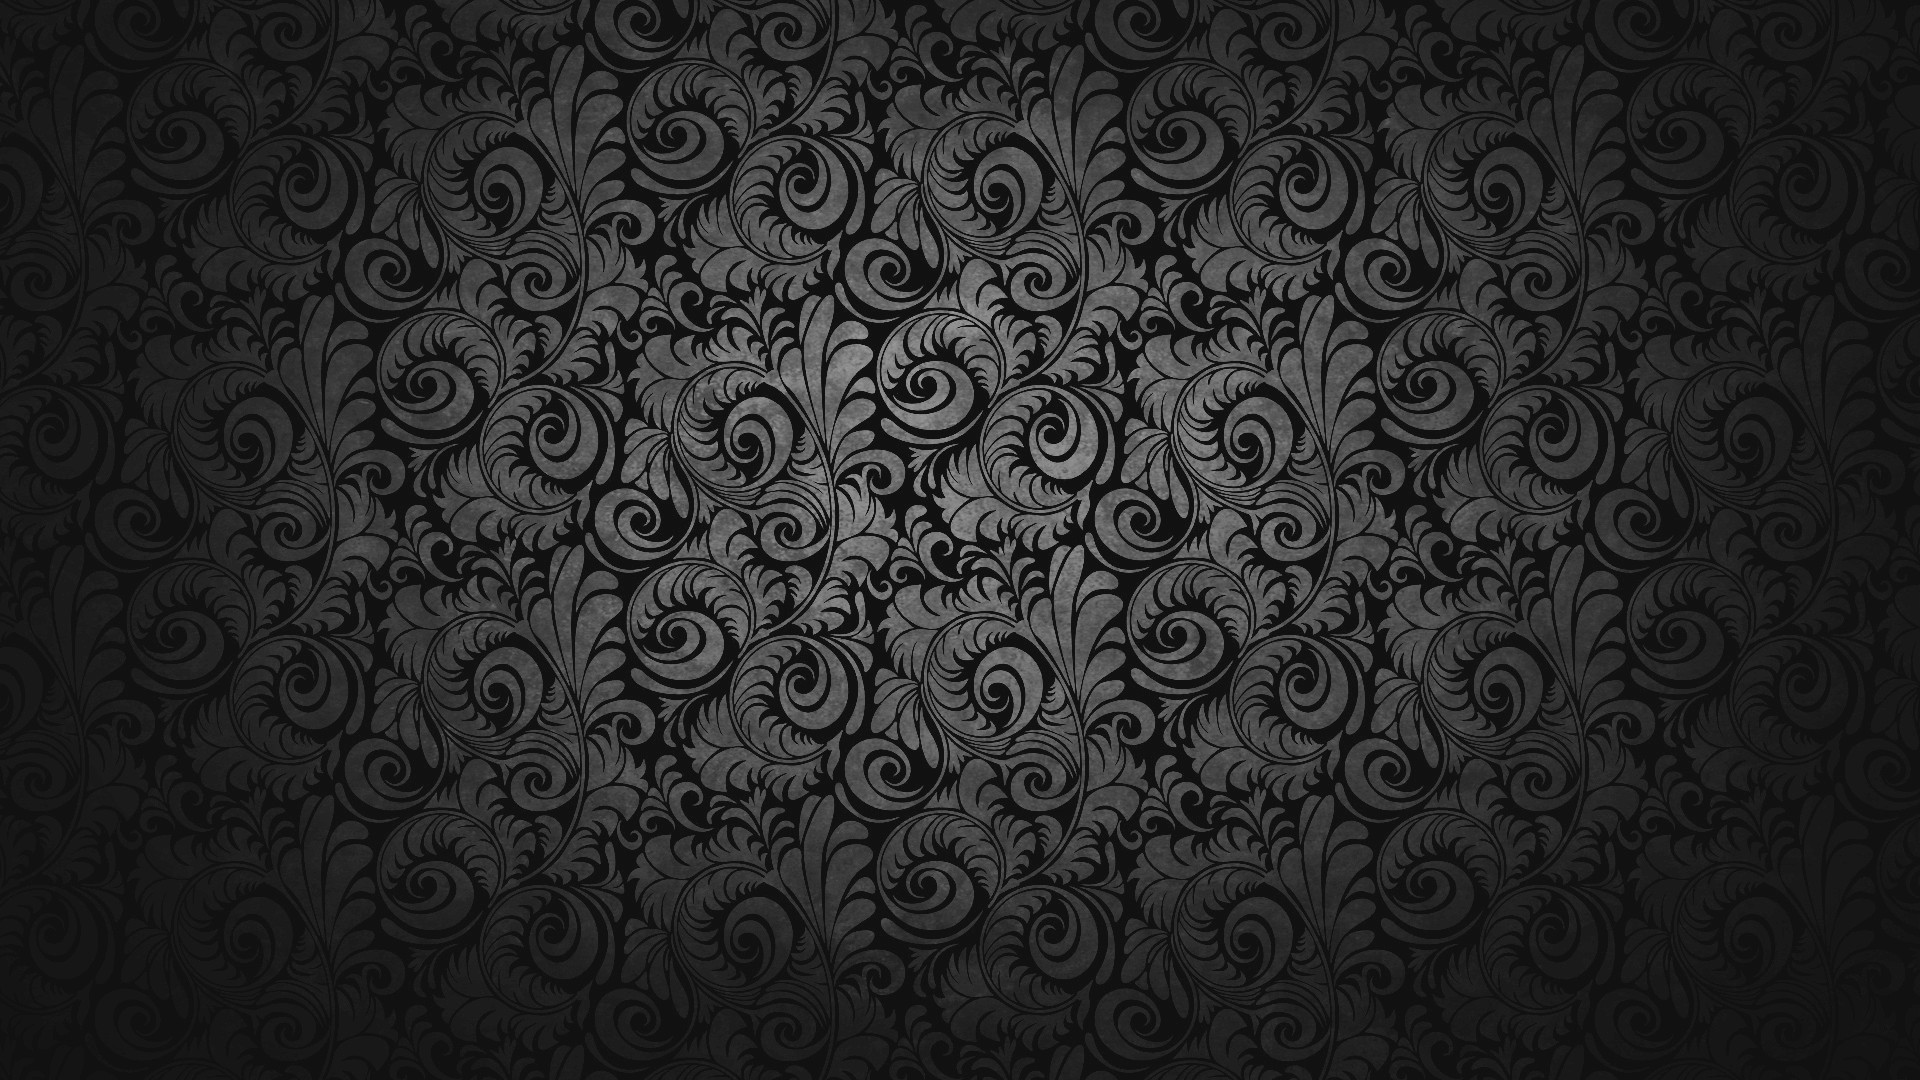 Architecture Floral Black Dark 556183 Wallpaper wallpaper